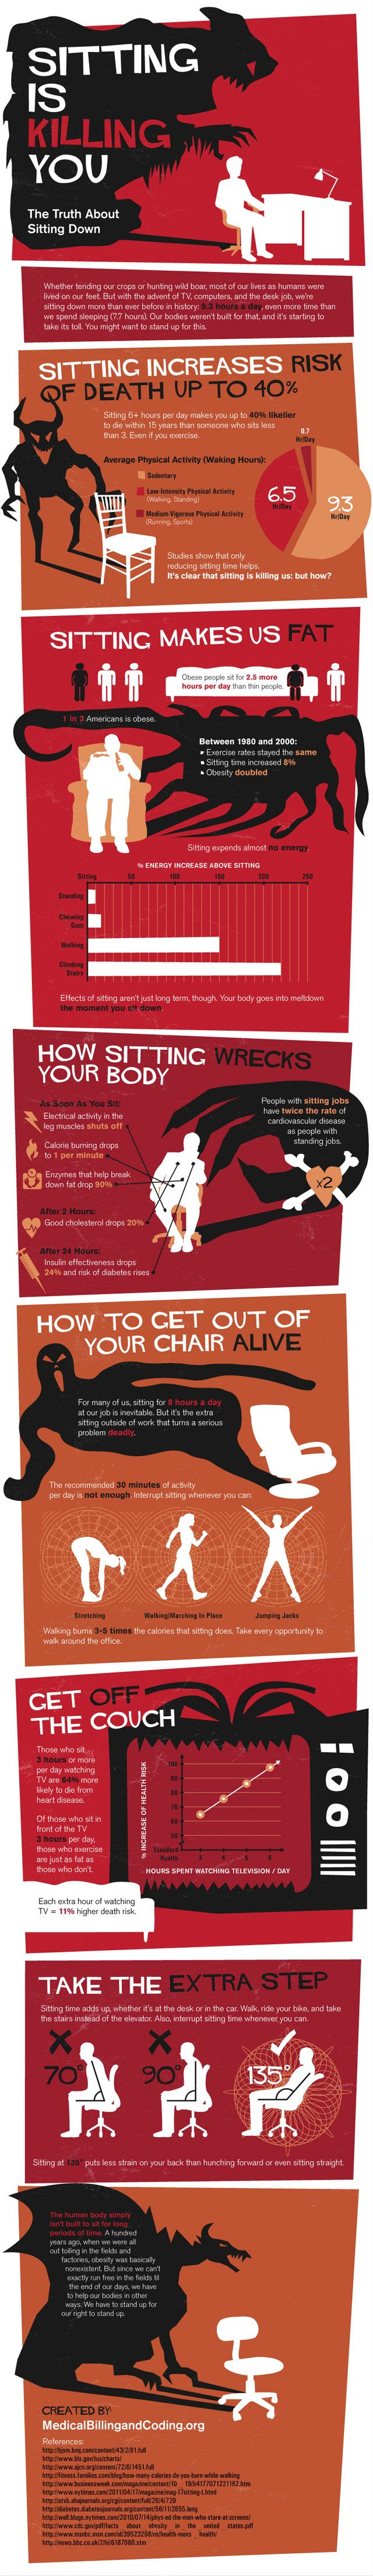 Sitting is killing you!